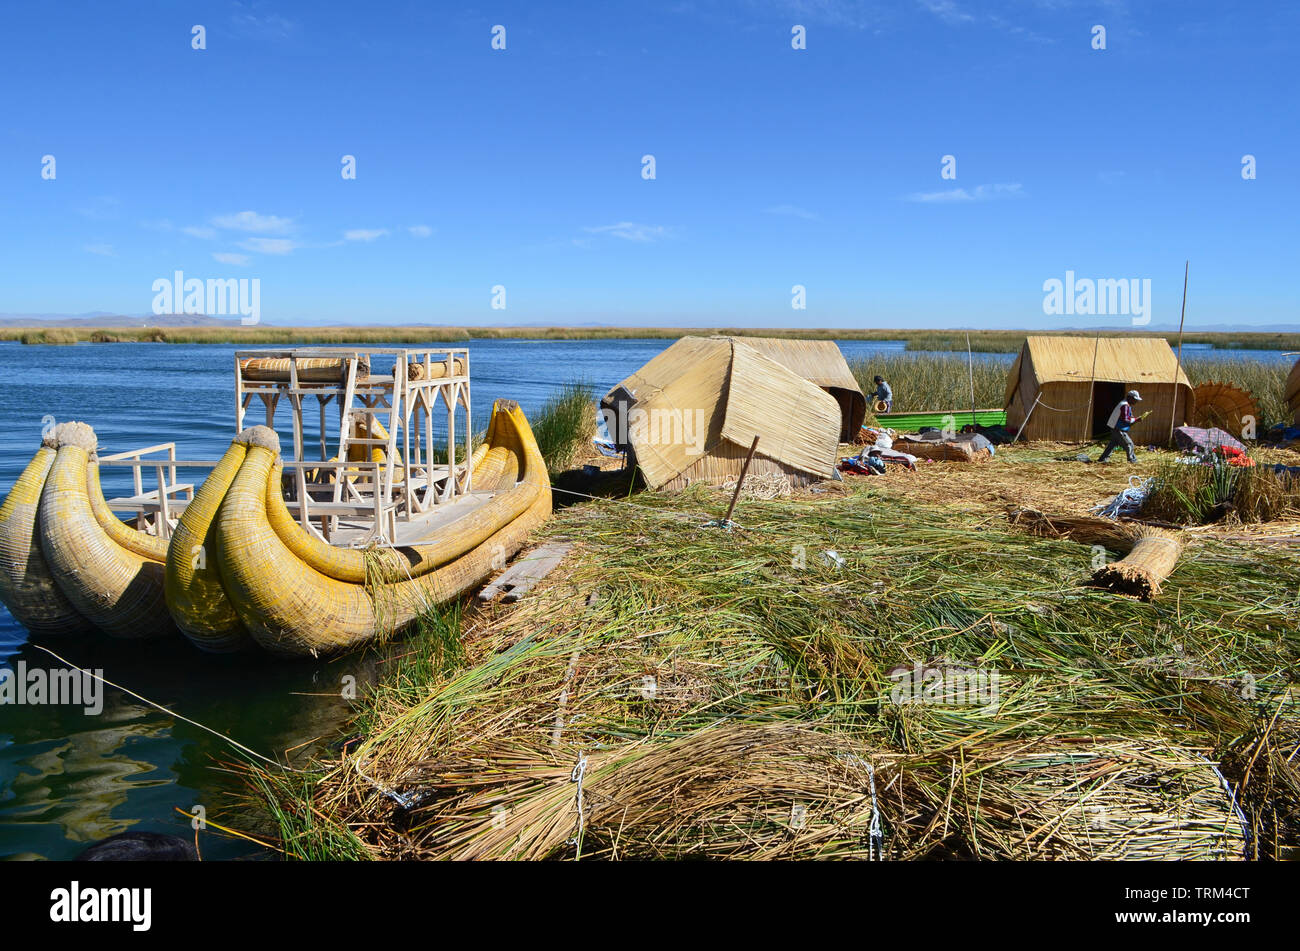 Peru,Puno,Titicaca. View of Titicaca Lake and reed boats or caballitos de totora. - Stock Image